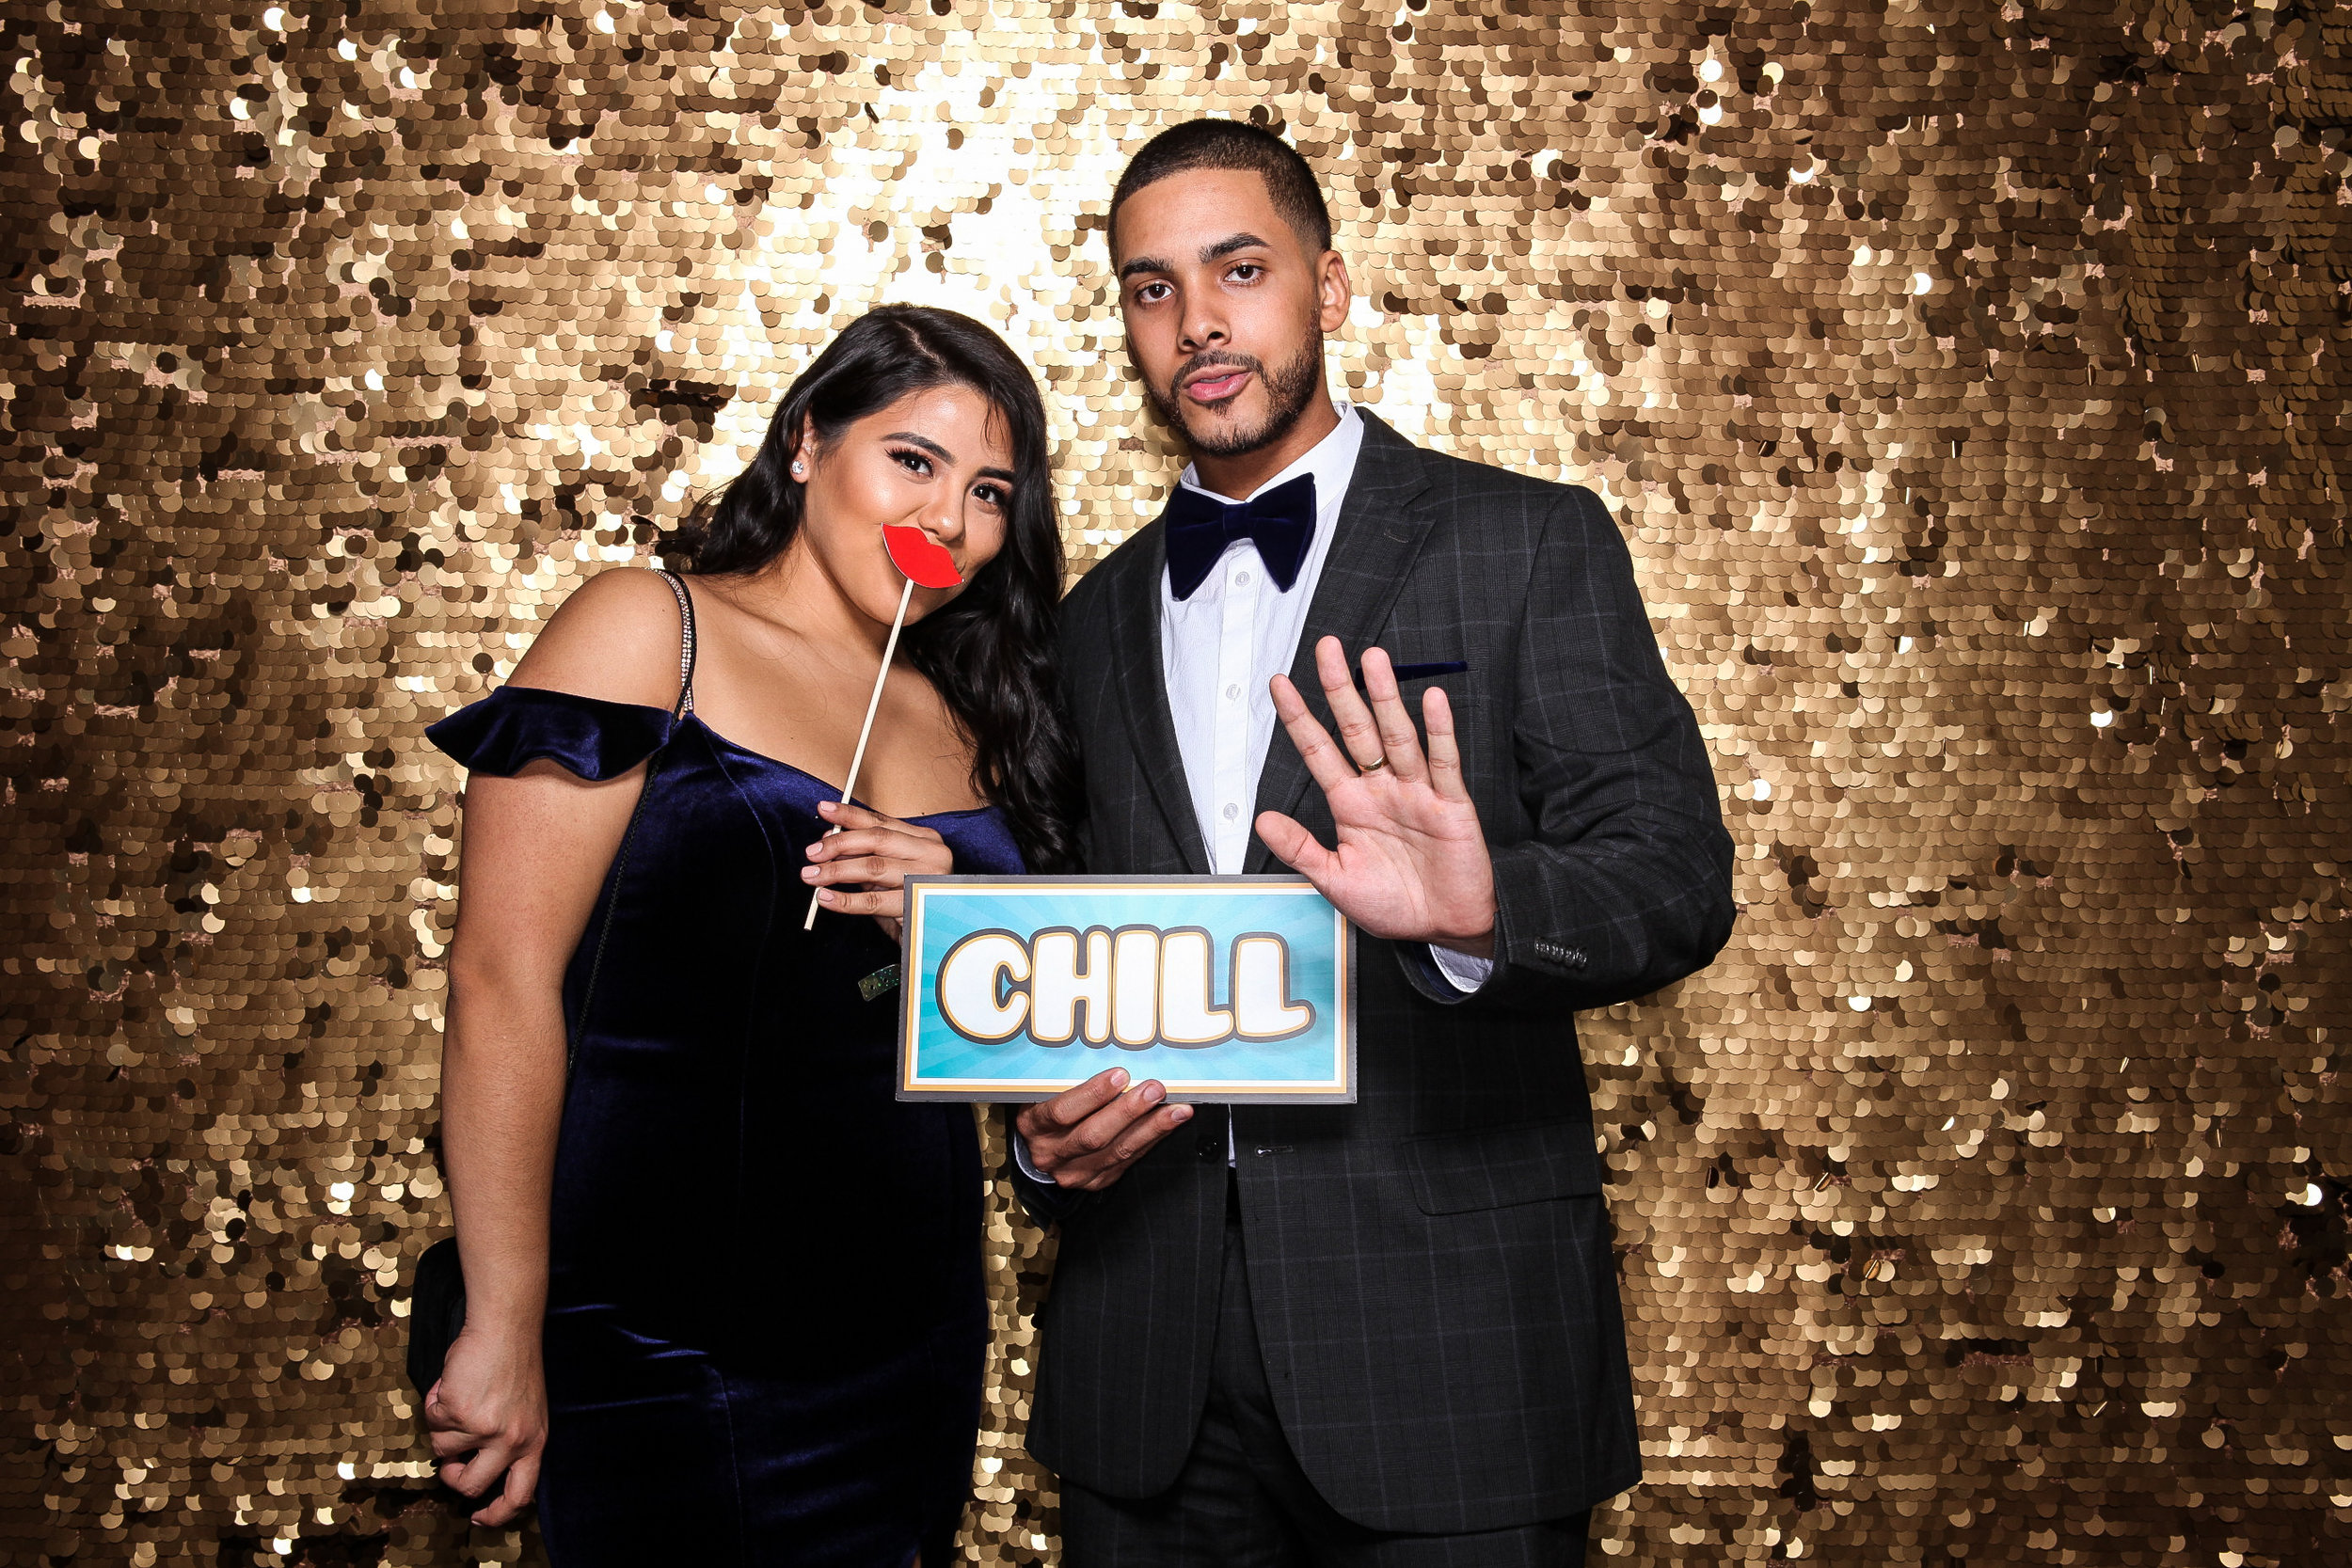 20190503_Adelphi_Senior_Formal-163.jpg